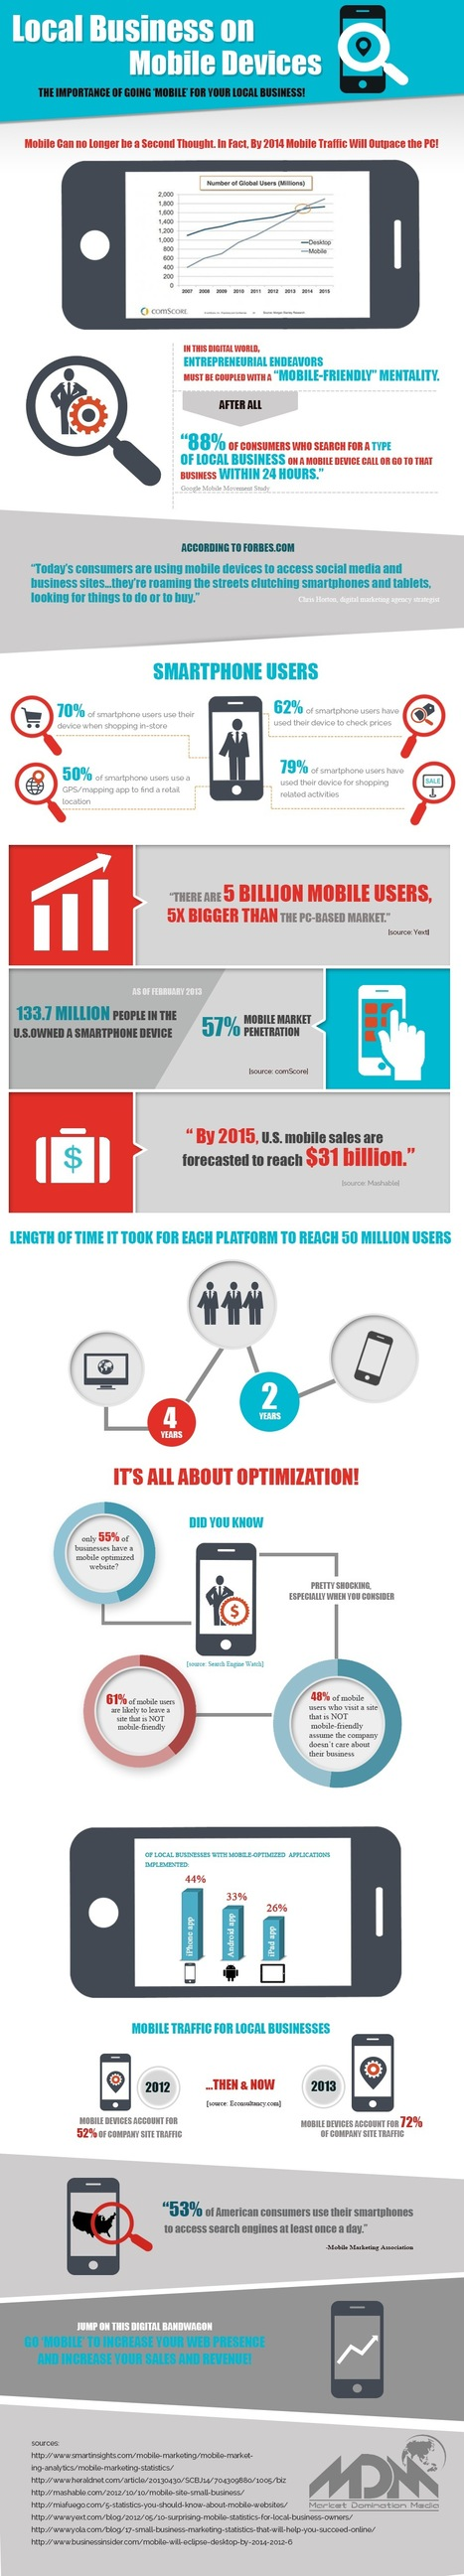 Why Your Business Needs To Be Found On Mobile Devices | Fascinating #vo info. | Scoop.it